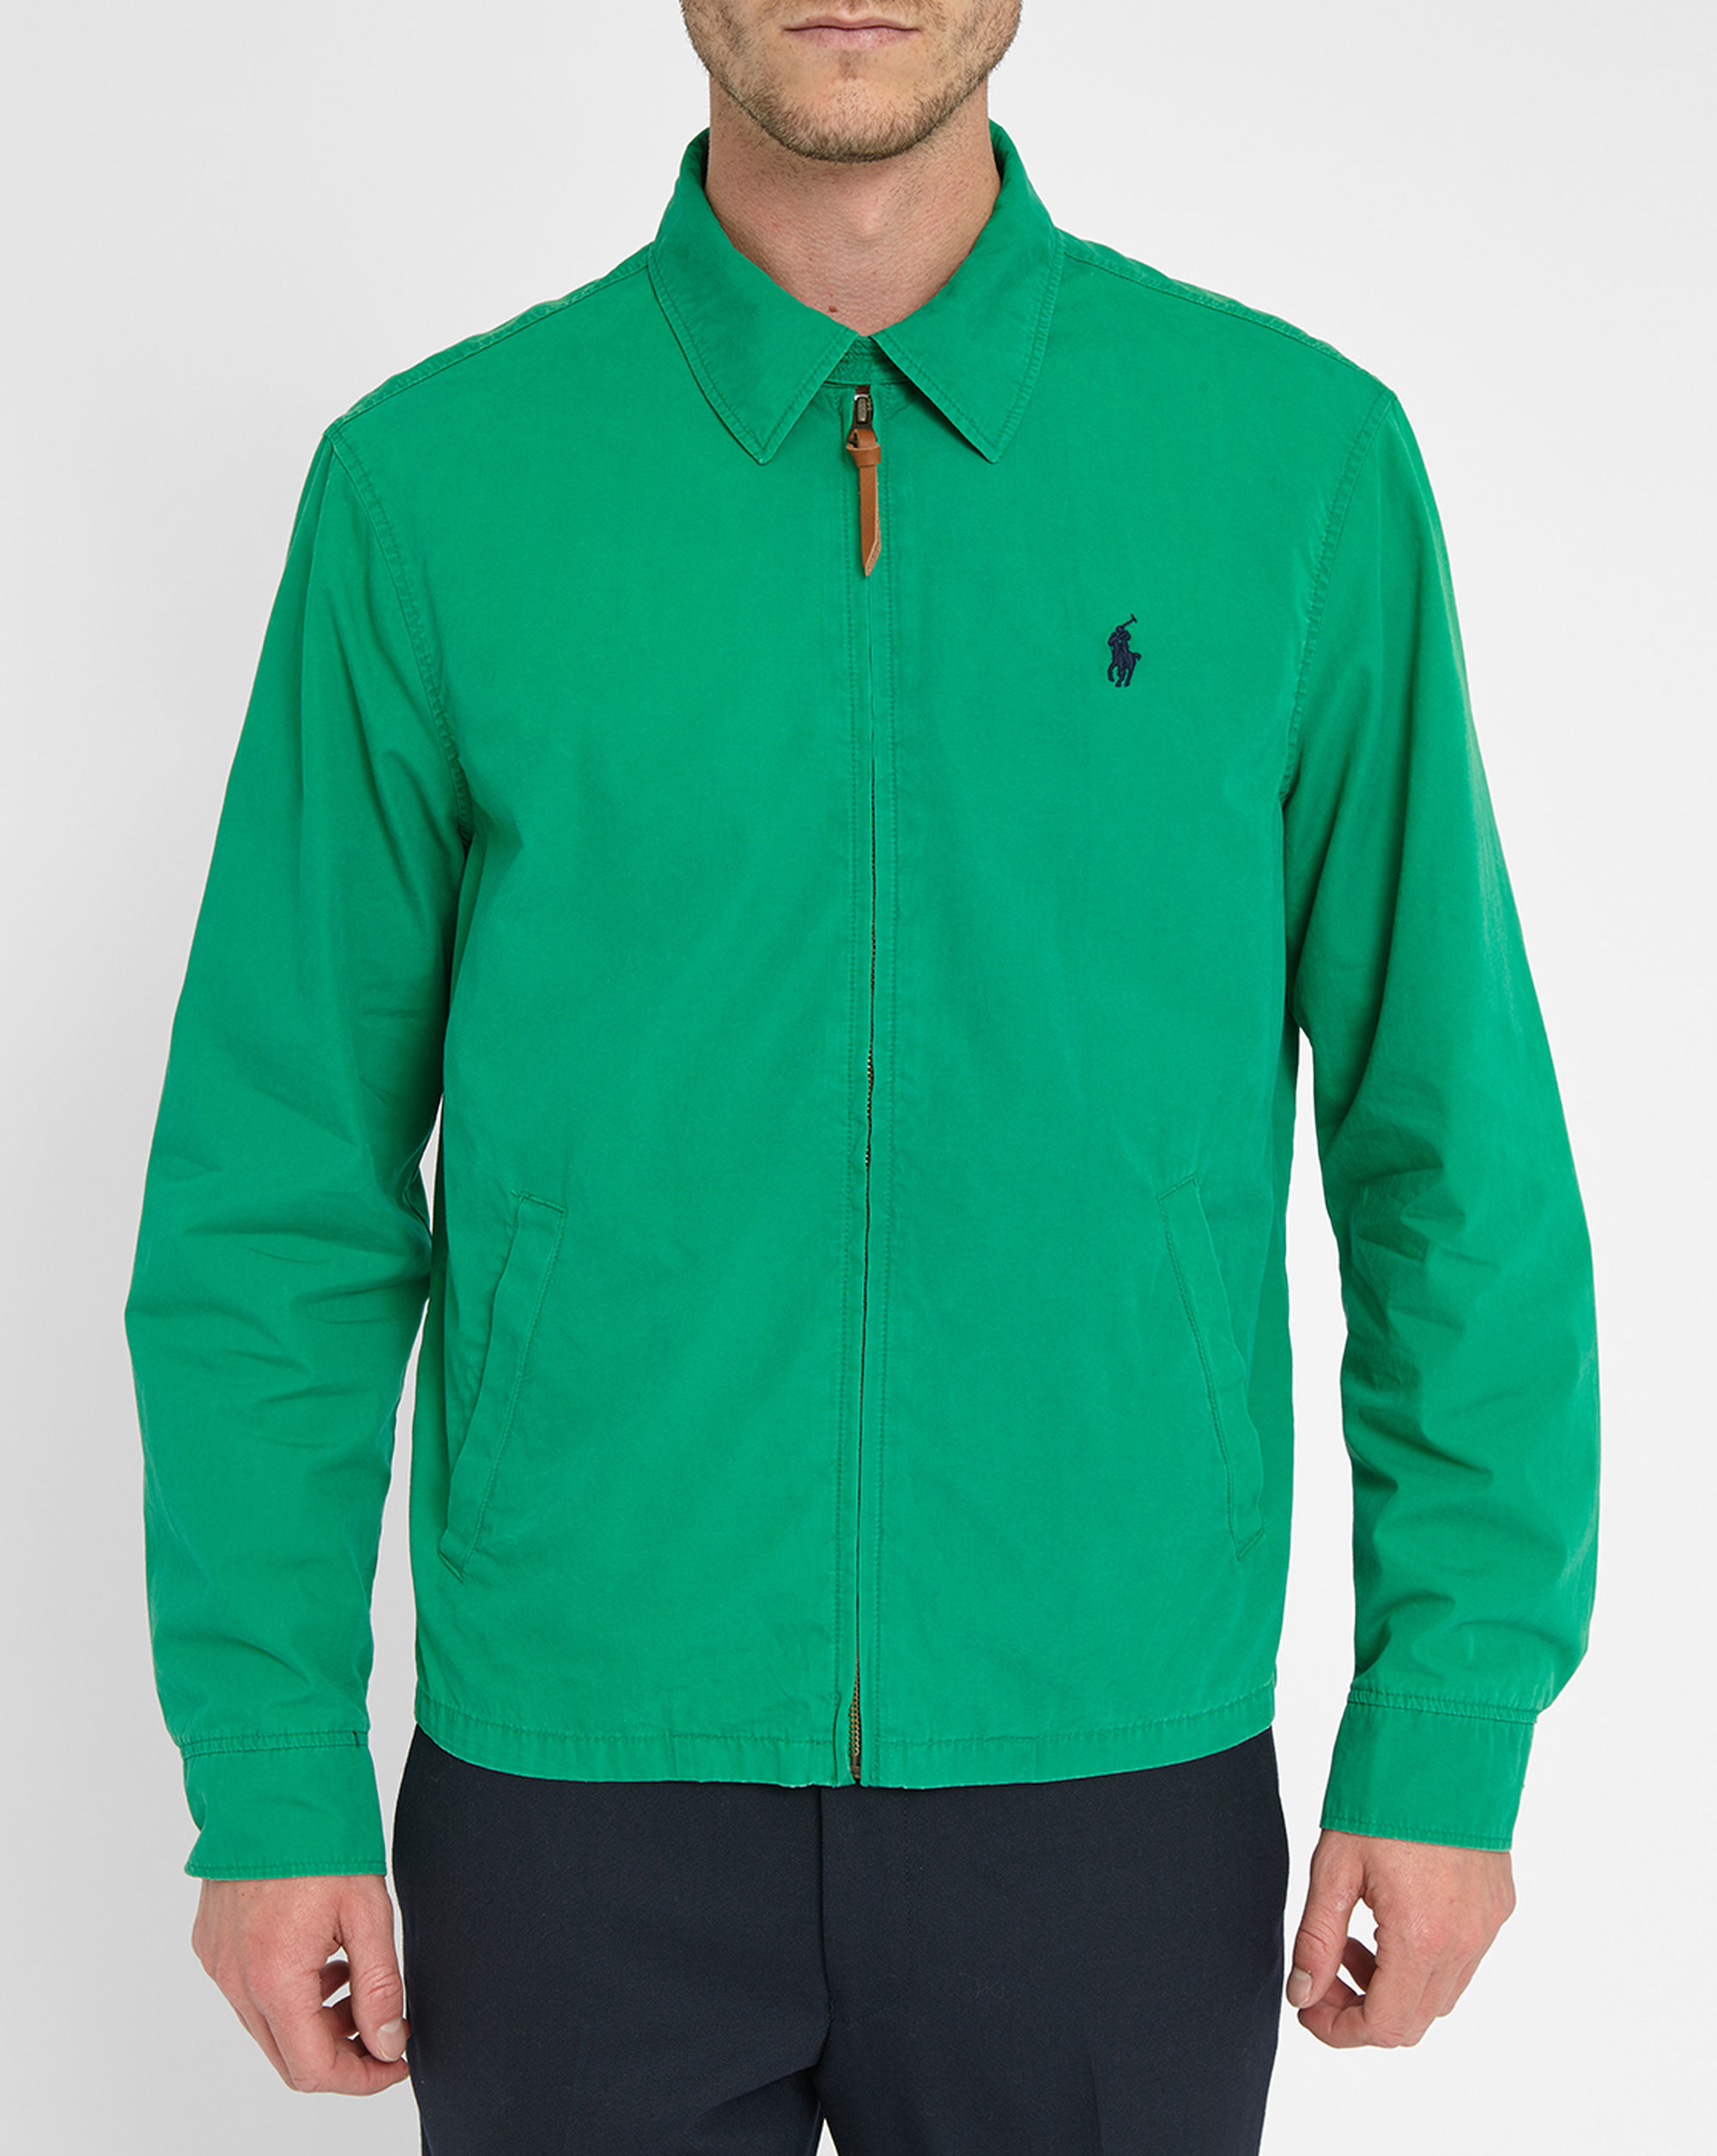 Polo ralph lauren green shirt collar chino jacket in green for Polo shirt with jacket